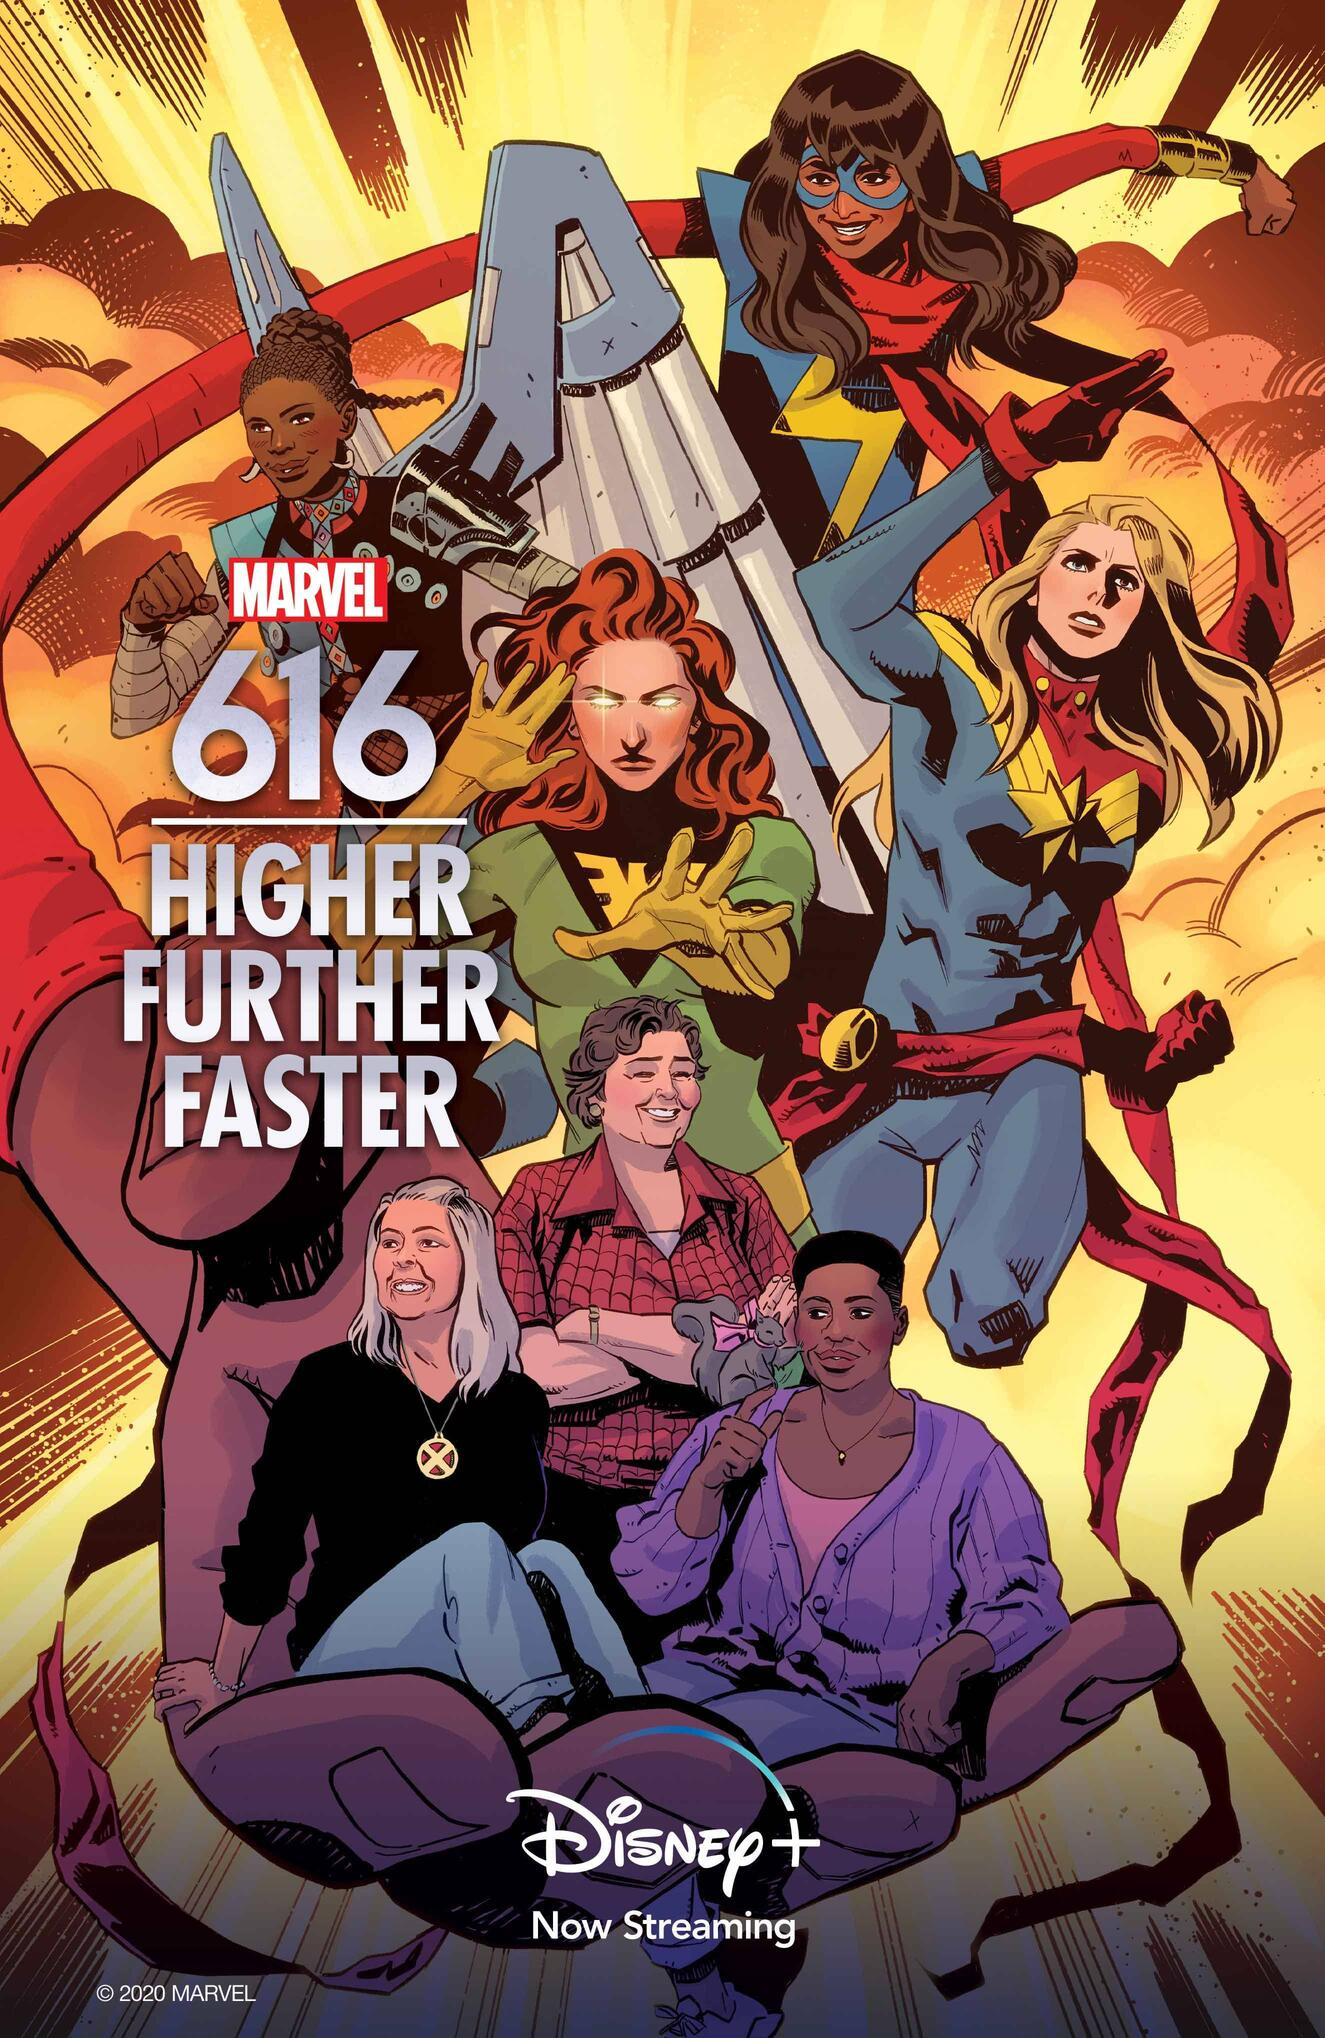 Marvel's 616 Higher Further Faster